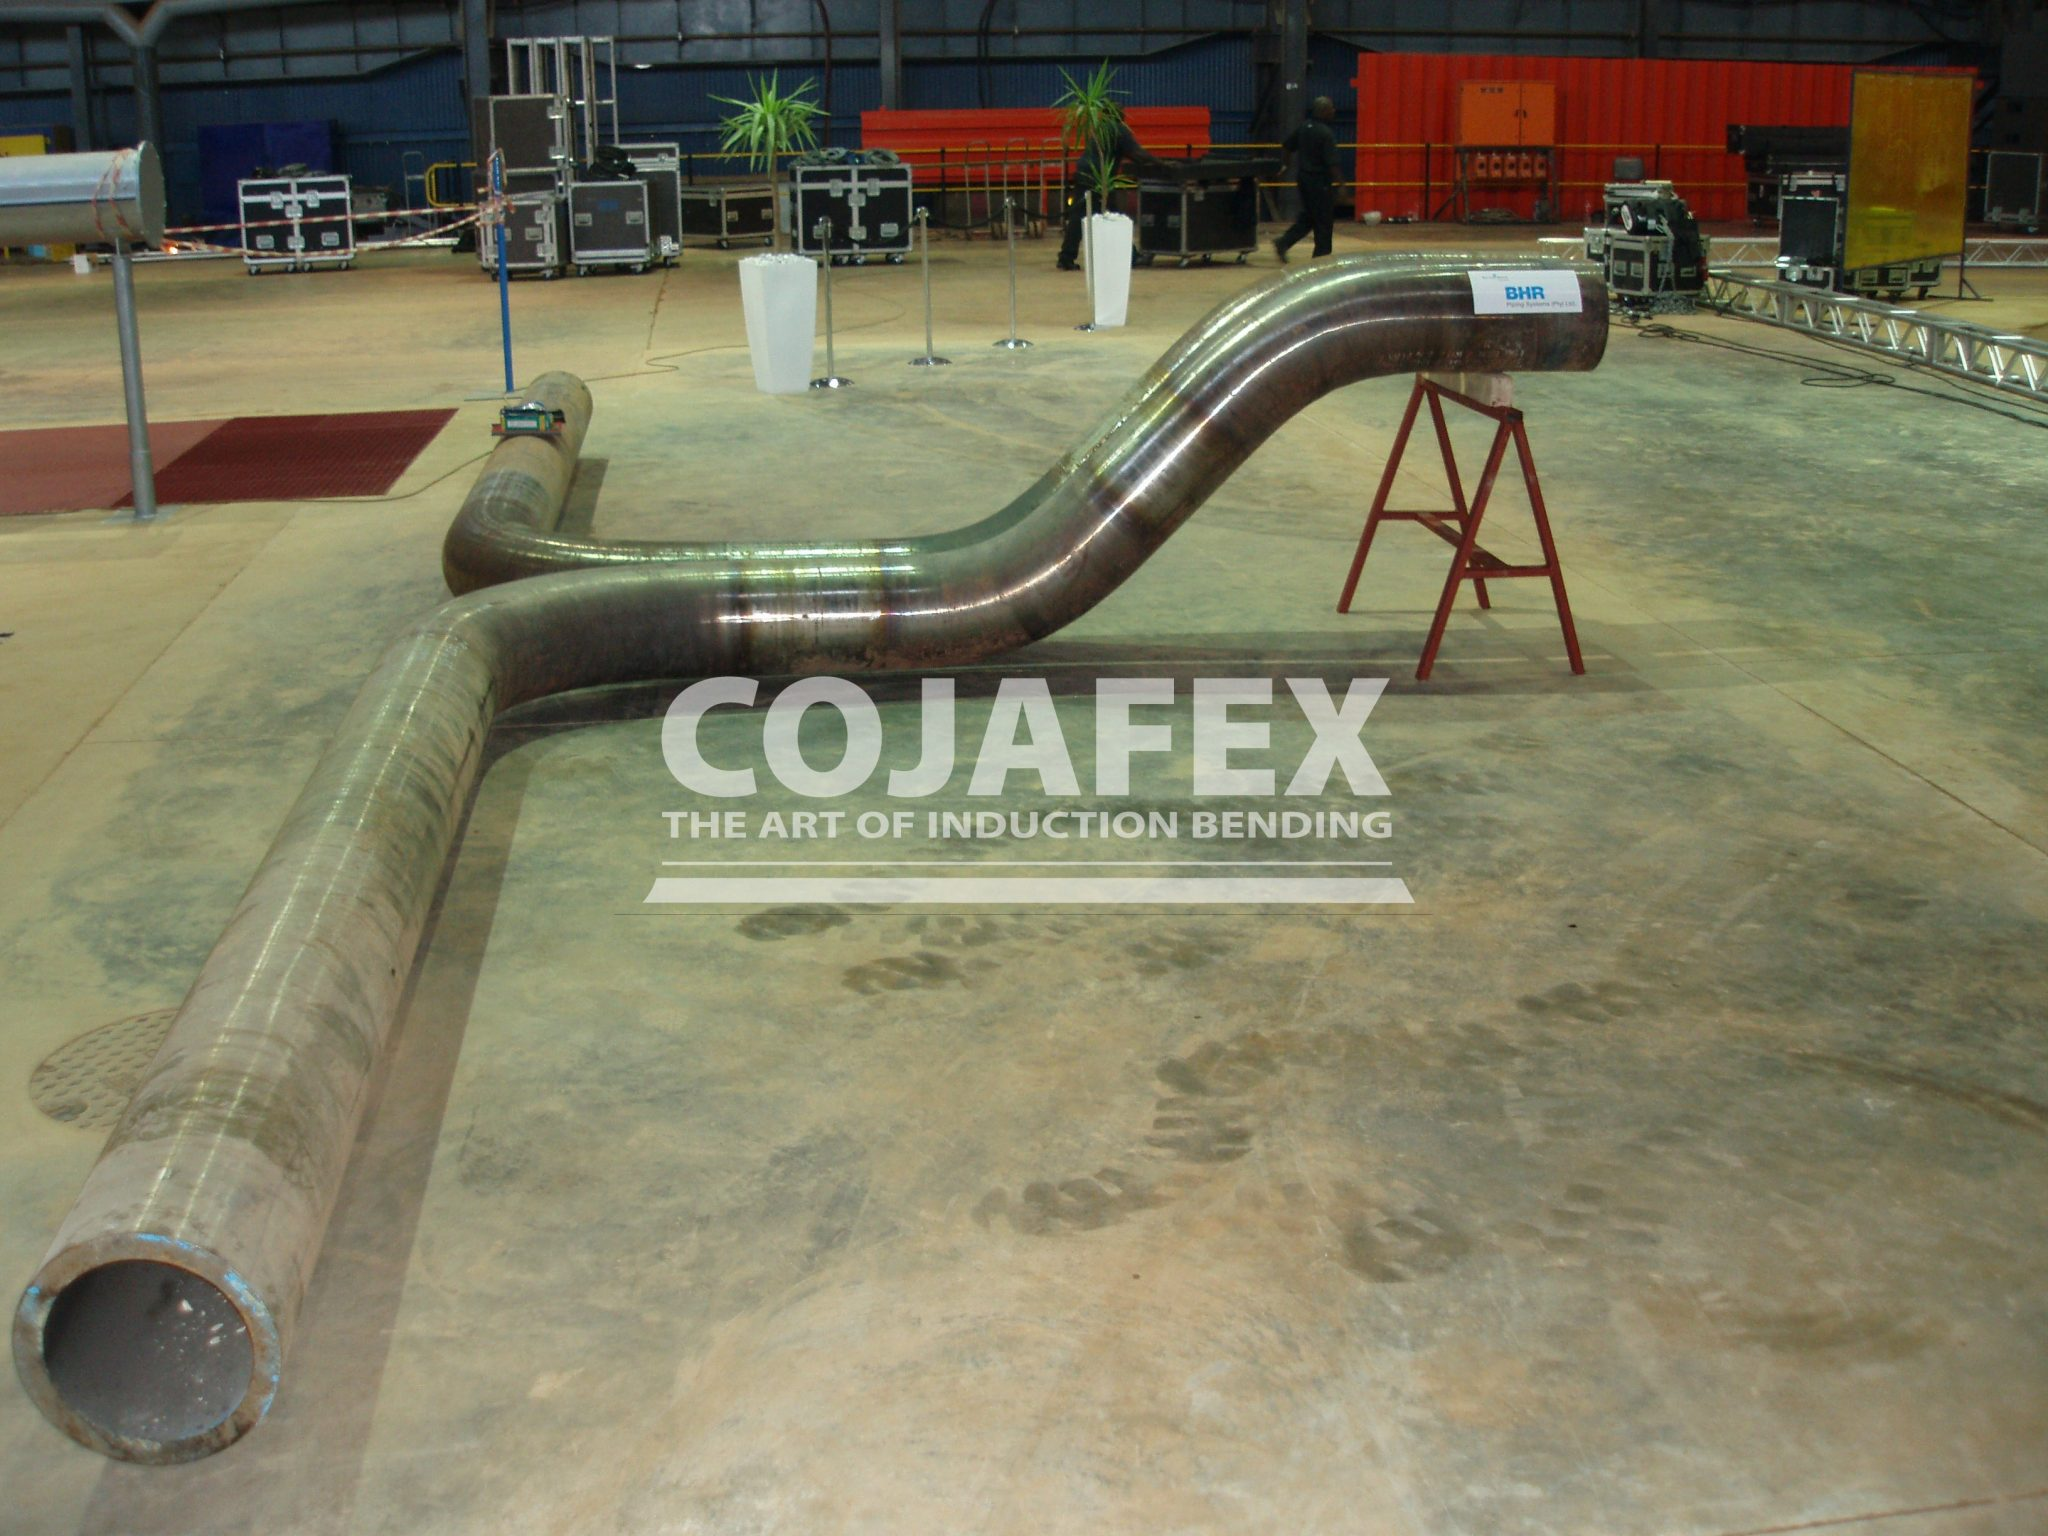 Induction Bending | Cojafex, specialists in induction bending machines